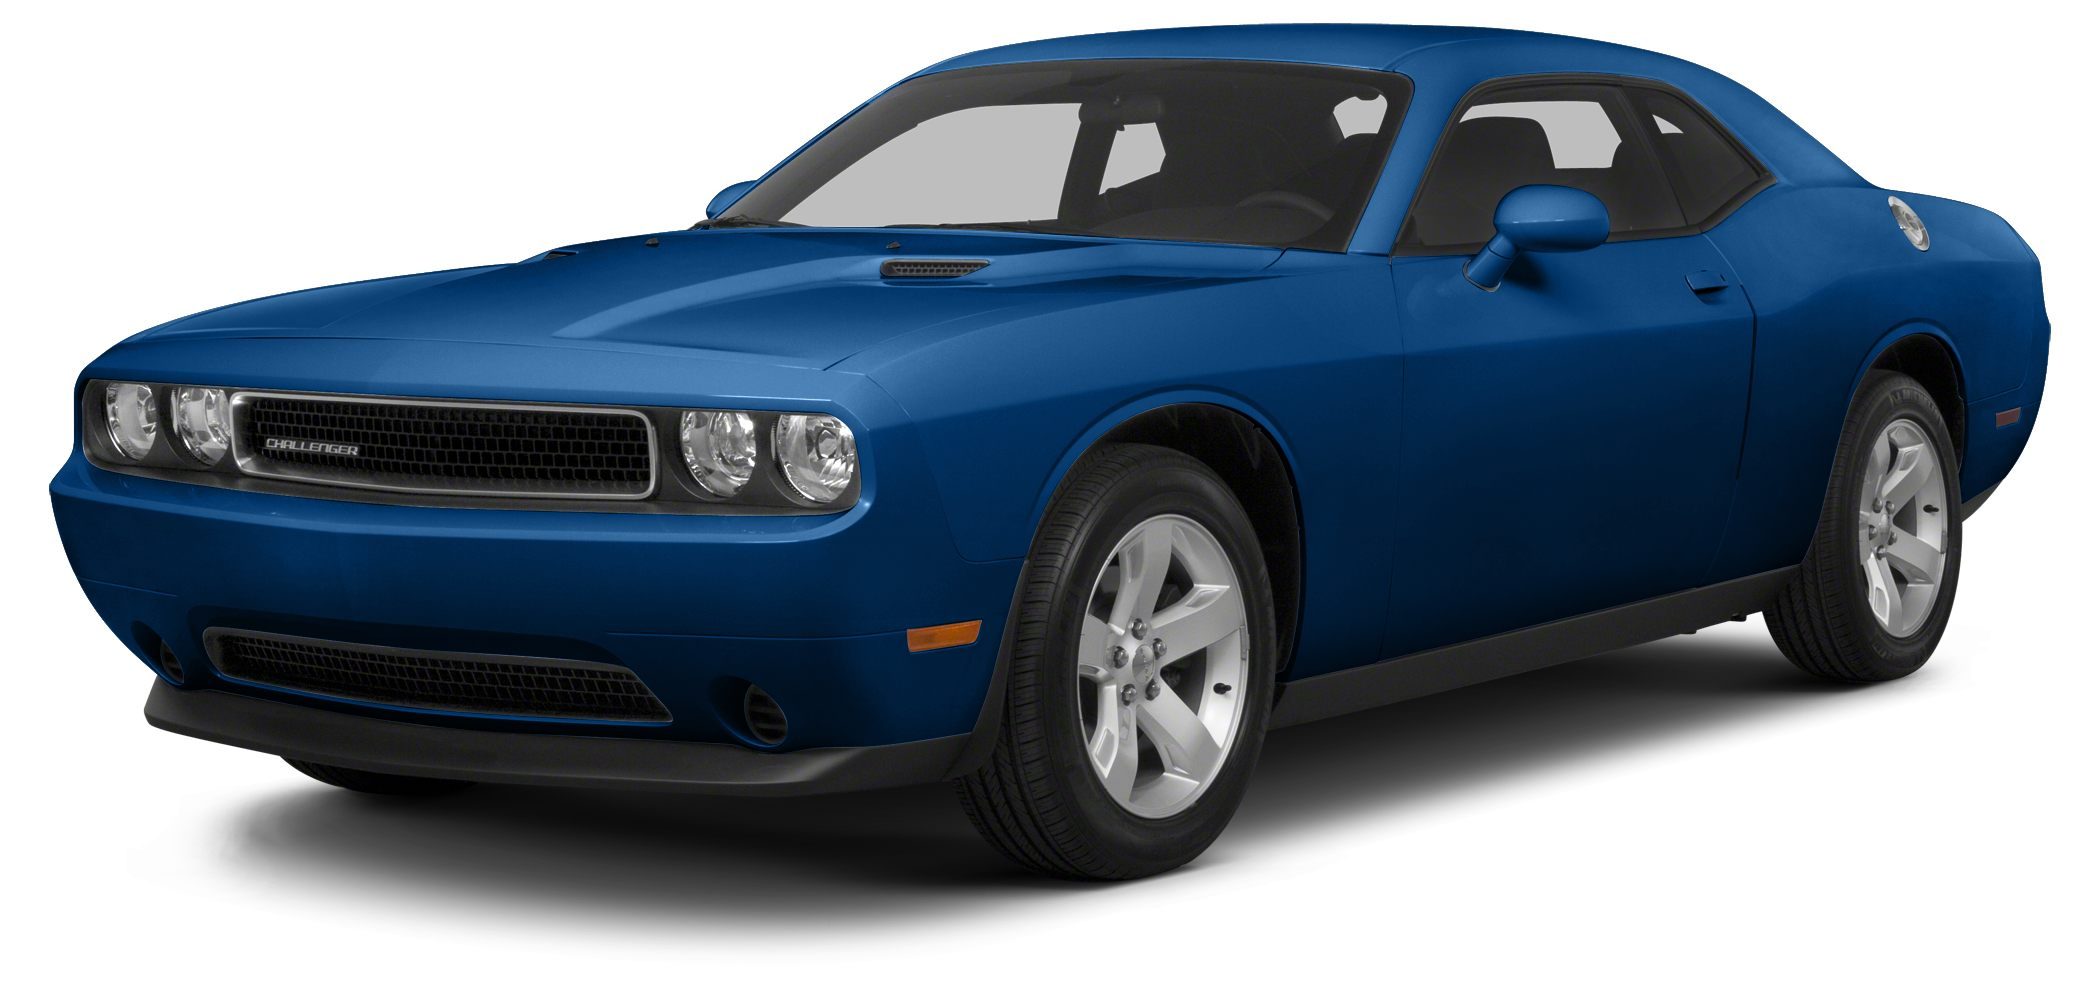 2012 Dodge Challenger SXT 2012 Dodge Challenger searching for for a great deal on a electrifying S